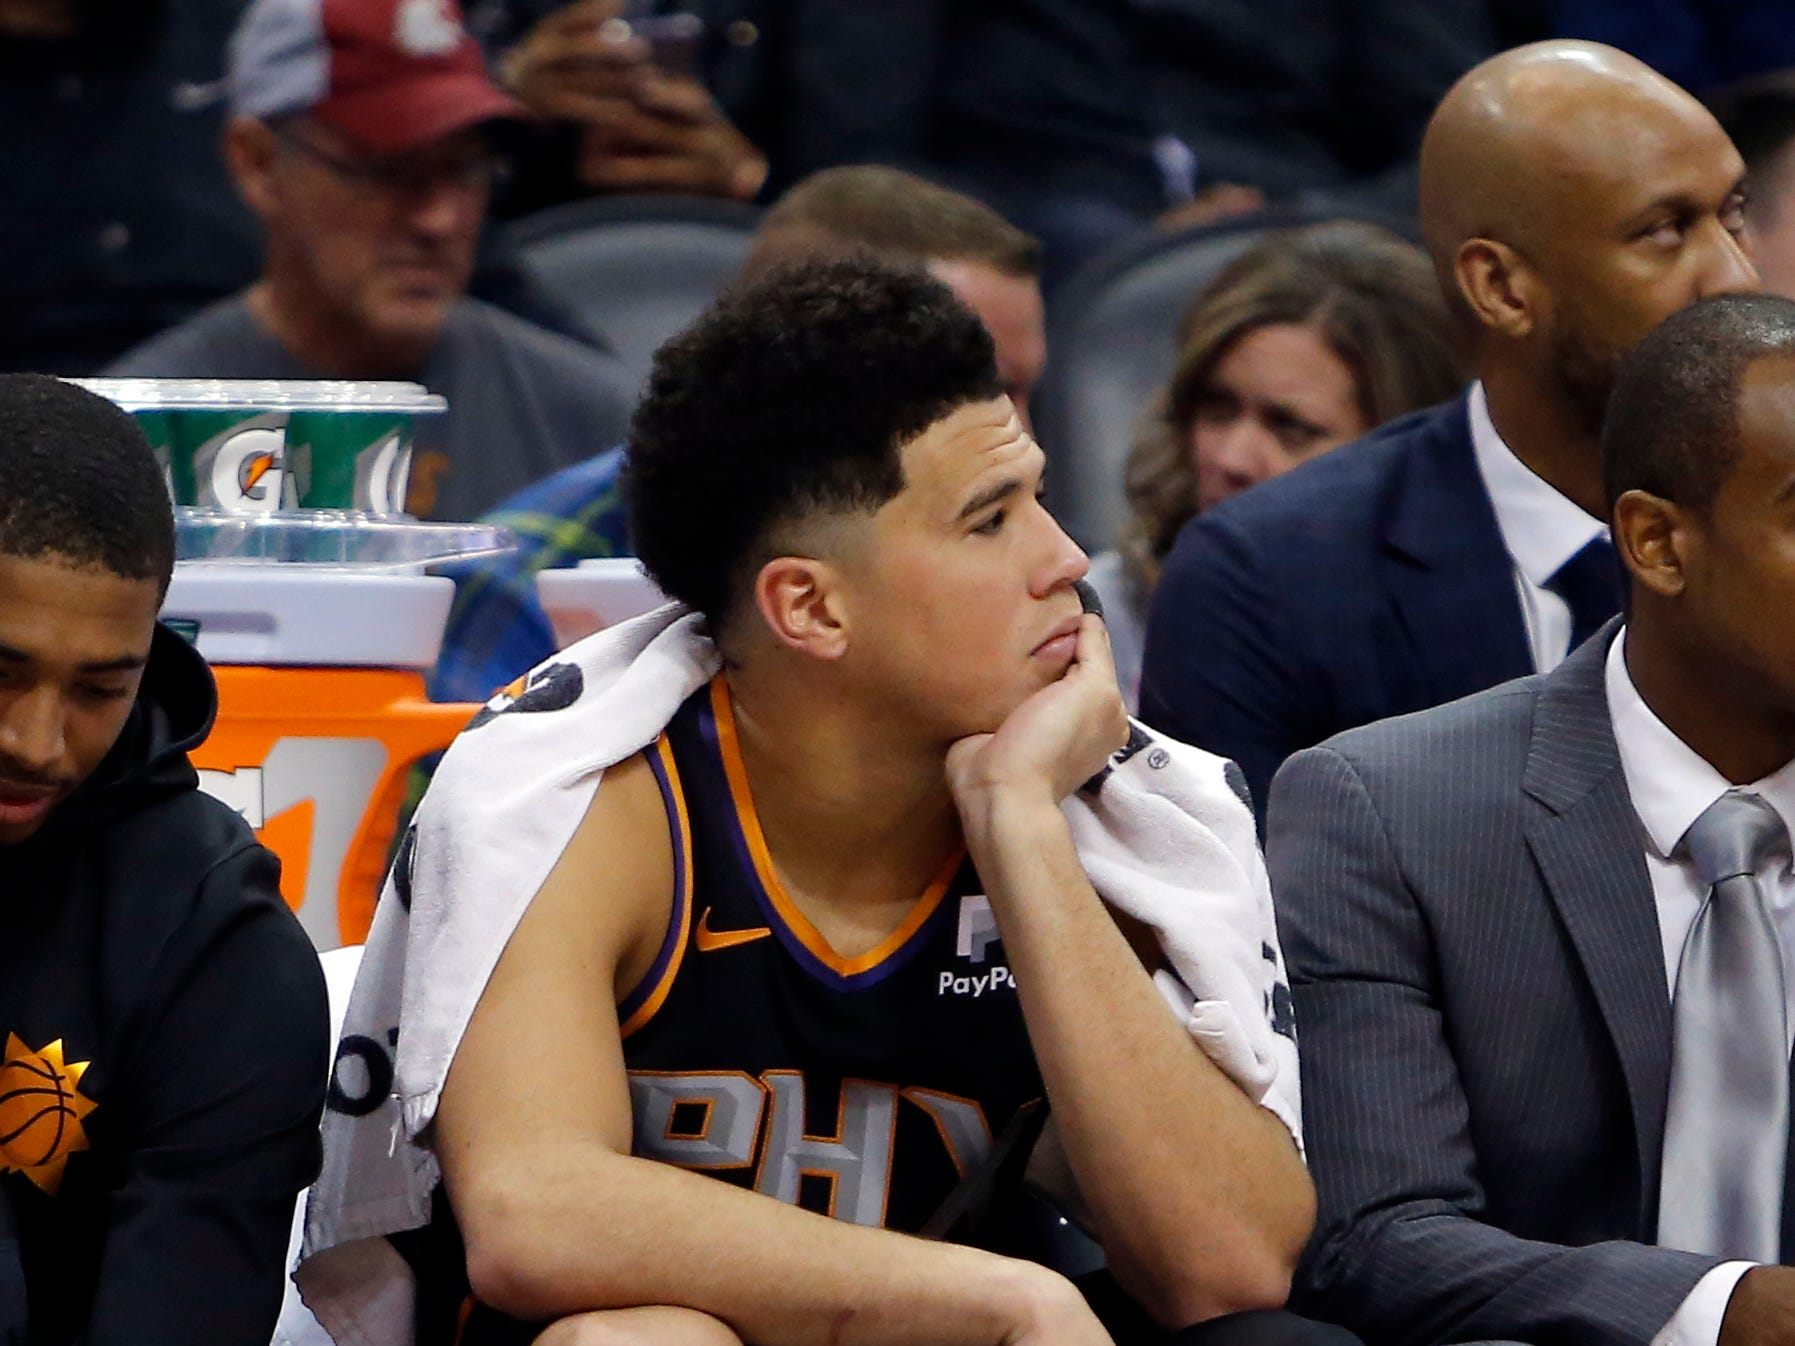 Phoenix Suns guard Devin Booker watches from the bench during the second half of the team's NBA basketball game against the Oklahoma City Thunder, Saturday, Nov. 17, 2018, in Phoenix. Oklahoma City won 110-100. (AP Photo/Rick Scuteri)